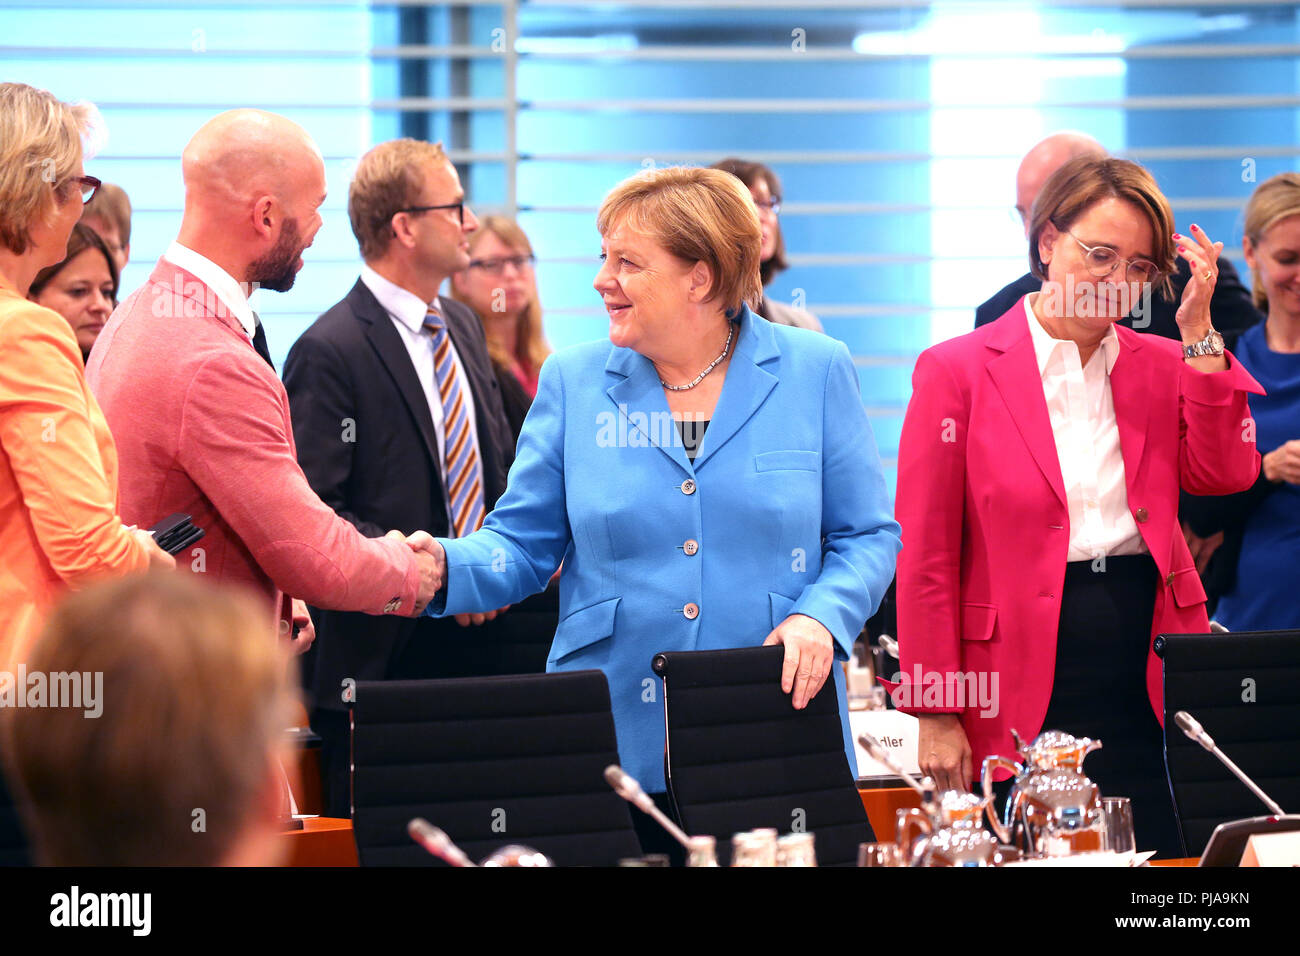 Berlin, Germany. 05th Sep, 2018. Federal Chancellor Angela Merkel (CDU) welcomes Education Ministers and teachers for a talk at the Federal Chancellery. Credit: Wolfgang Kumm/dpa/Alamy Live News - Stock Image